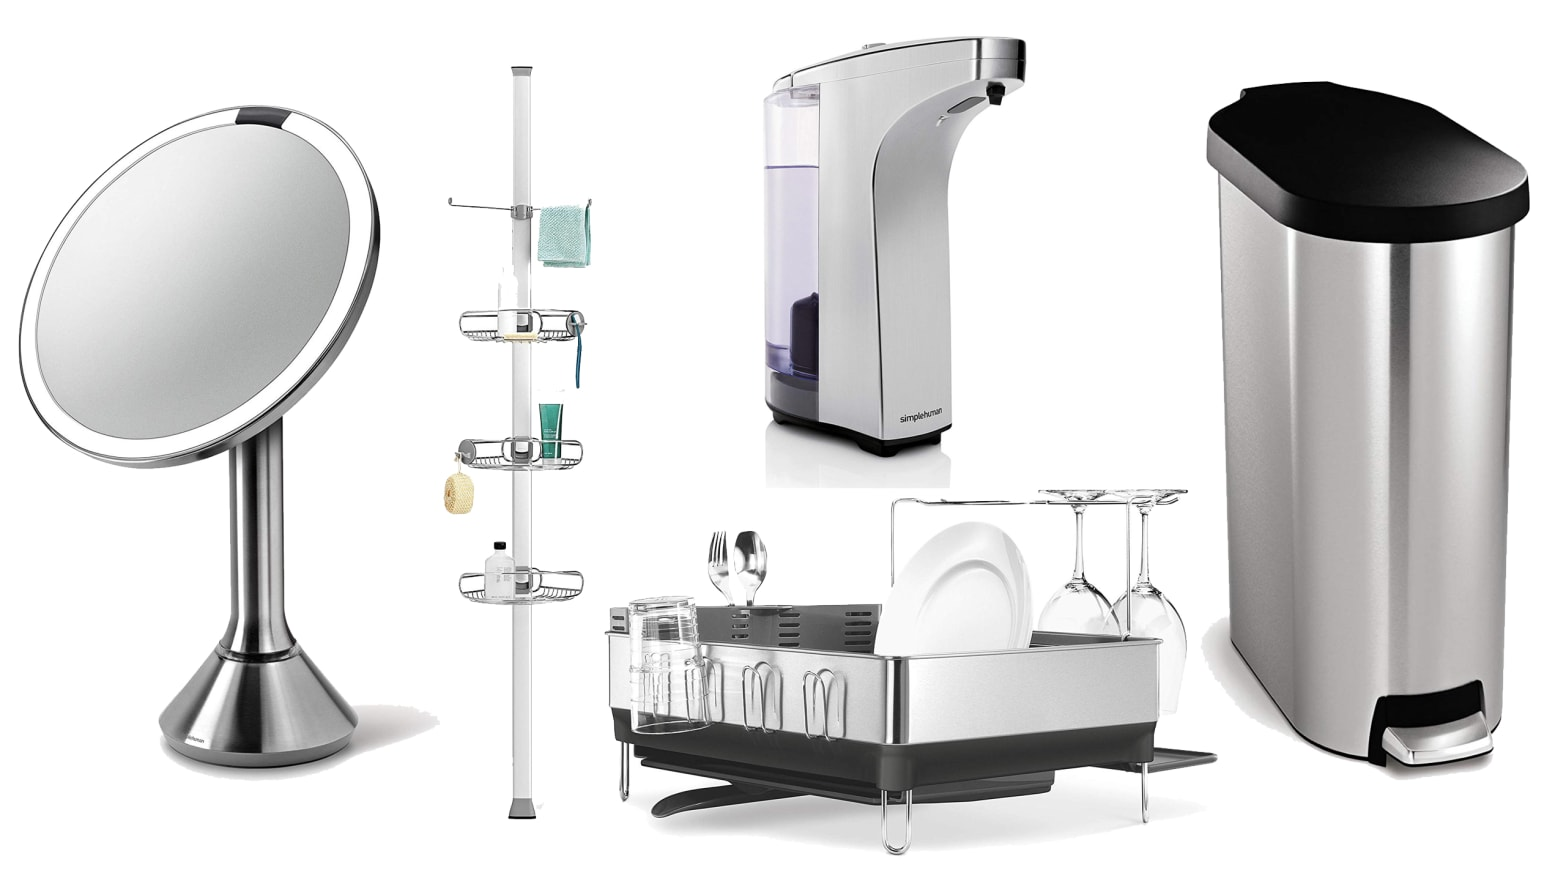 The Top Five Essentials to Get From simplehuman